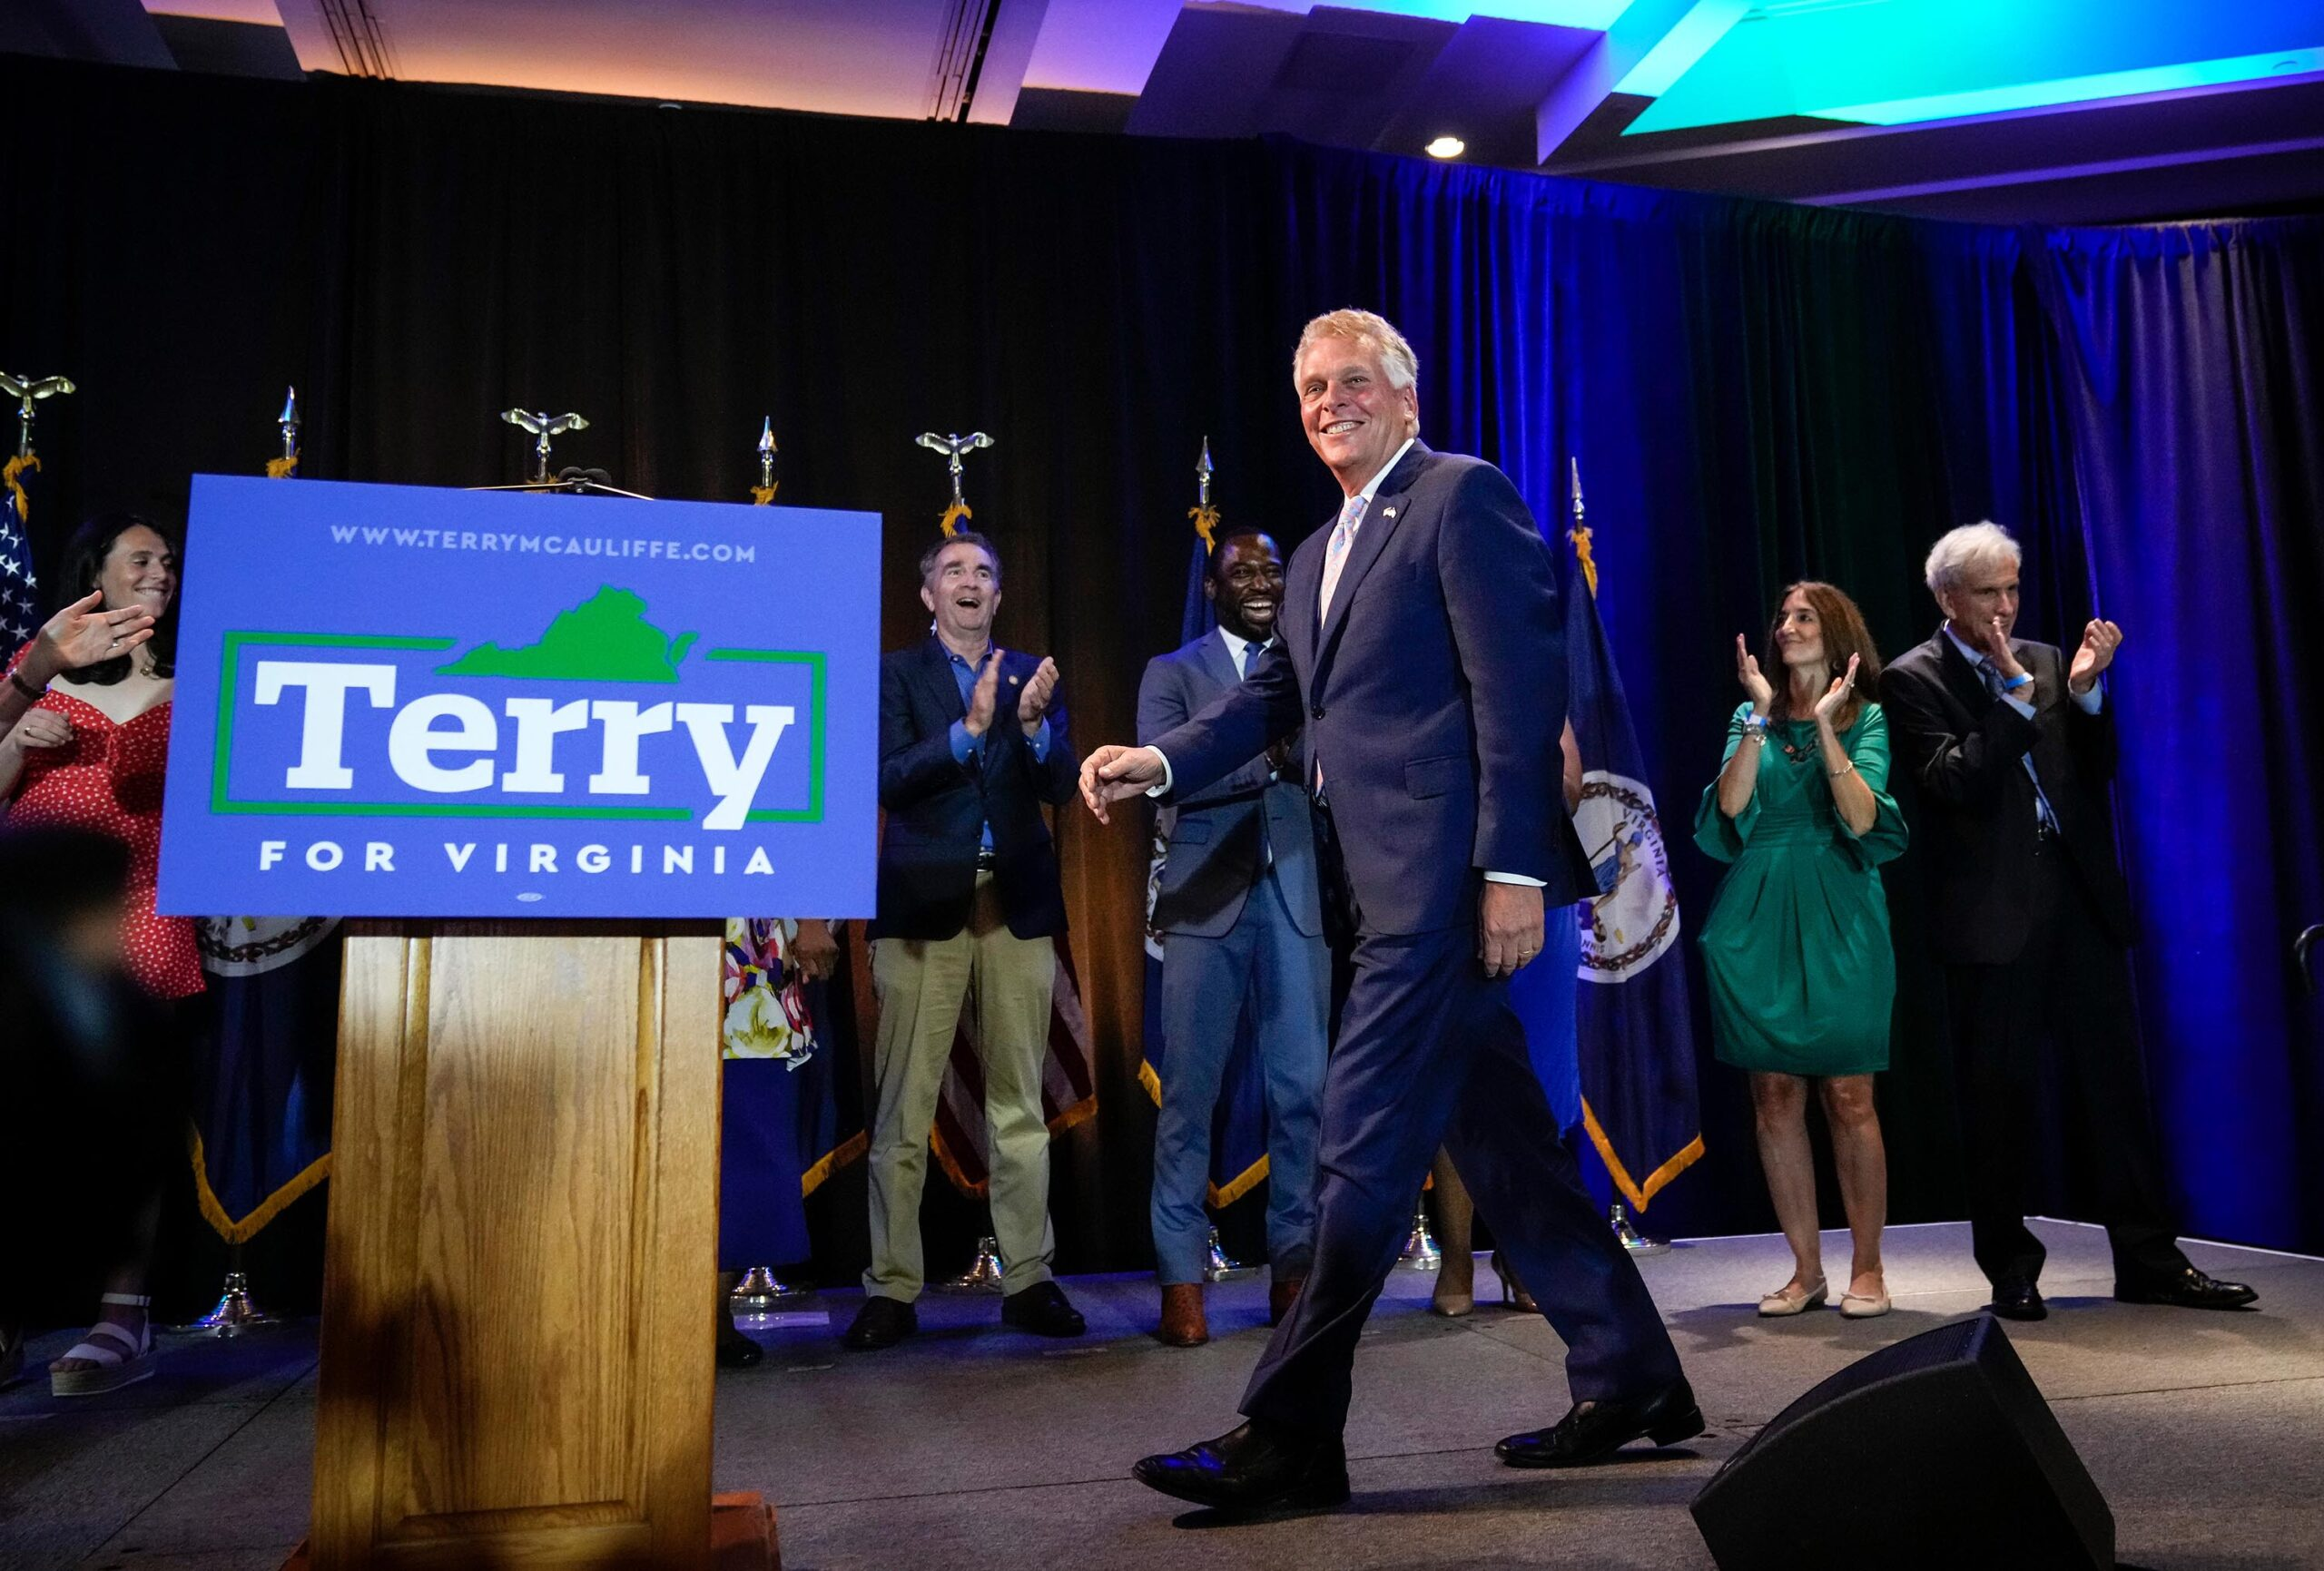 <i>Drew Angerer/Getty Images</i><br/>Virginia gubernatorial candidate Terry McAuliffe (D-VA) will receive a campaign boost from President Joe Biden who will campaign for him Friday.